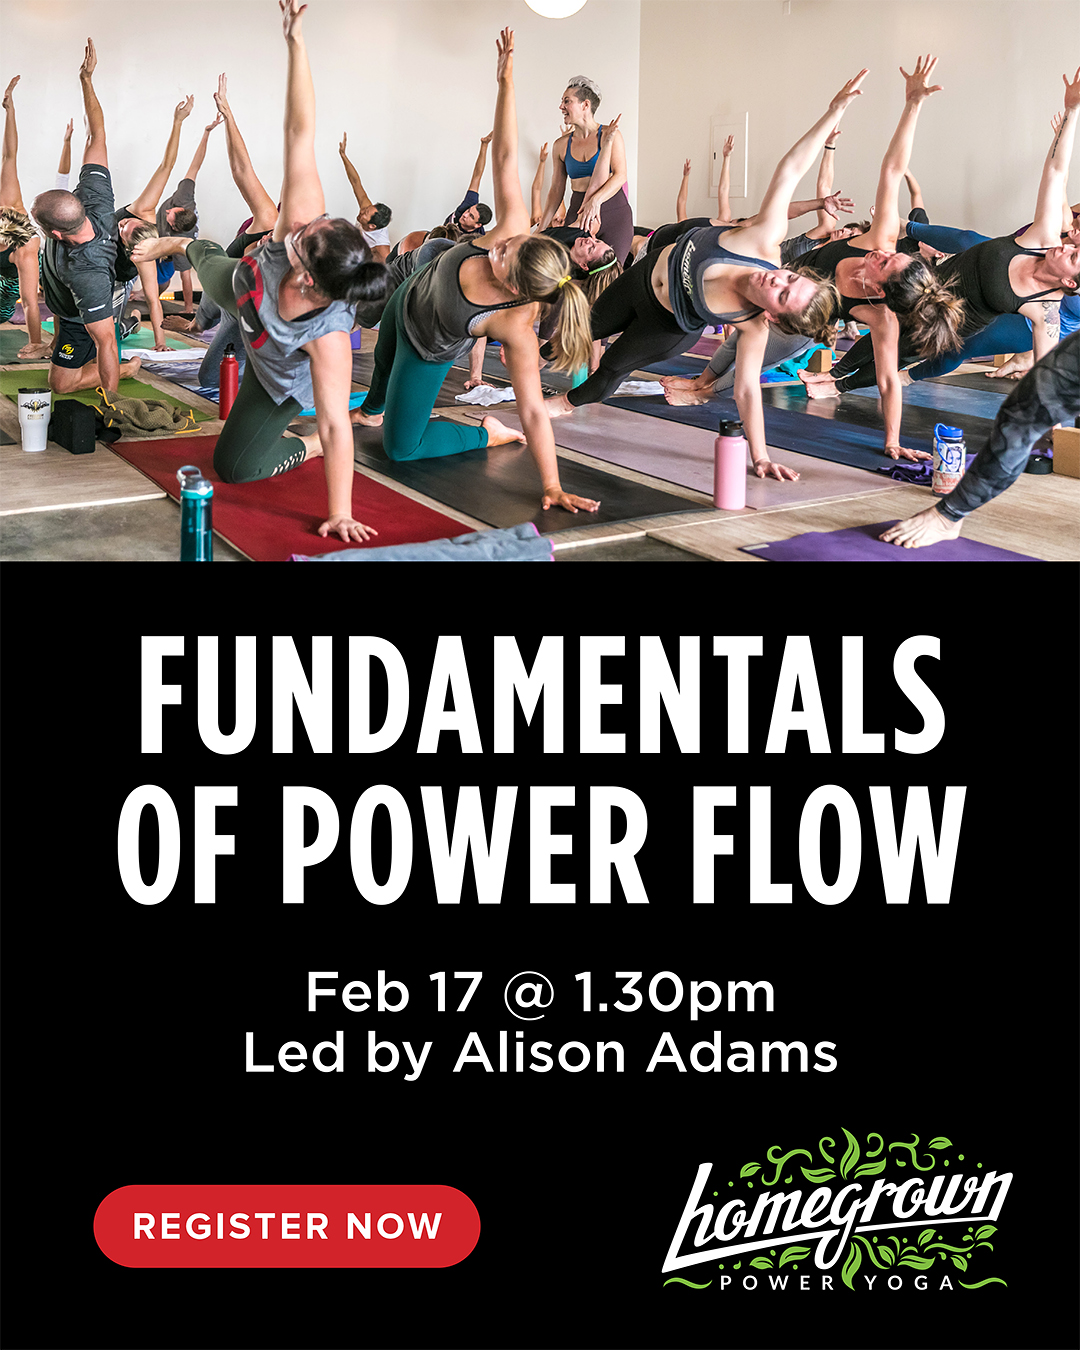 Fundamentals of Power Flow Poster Homegrown Power Yoga